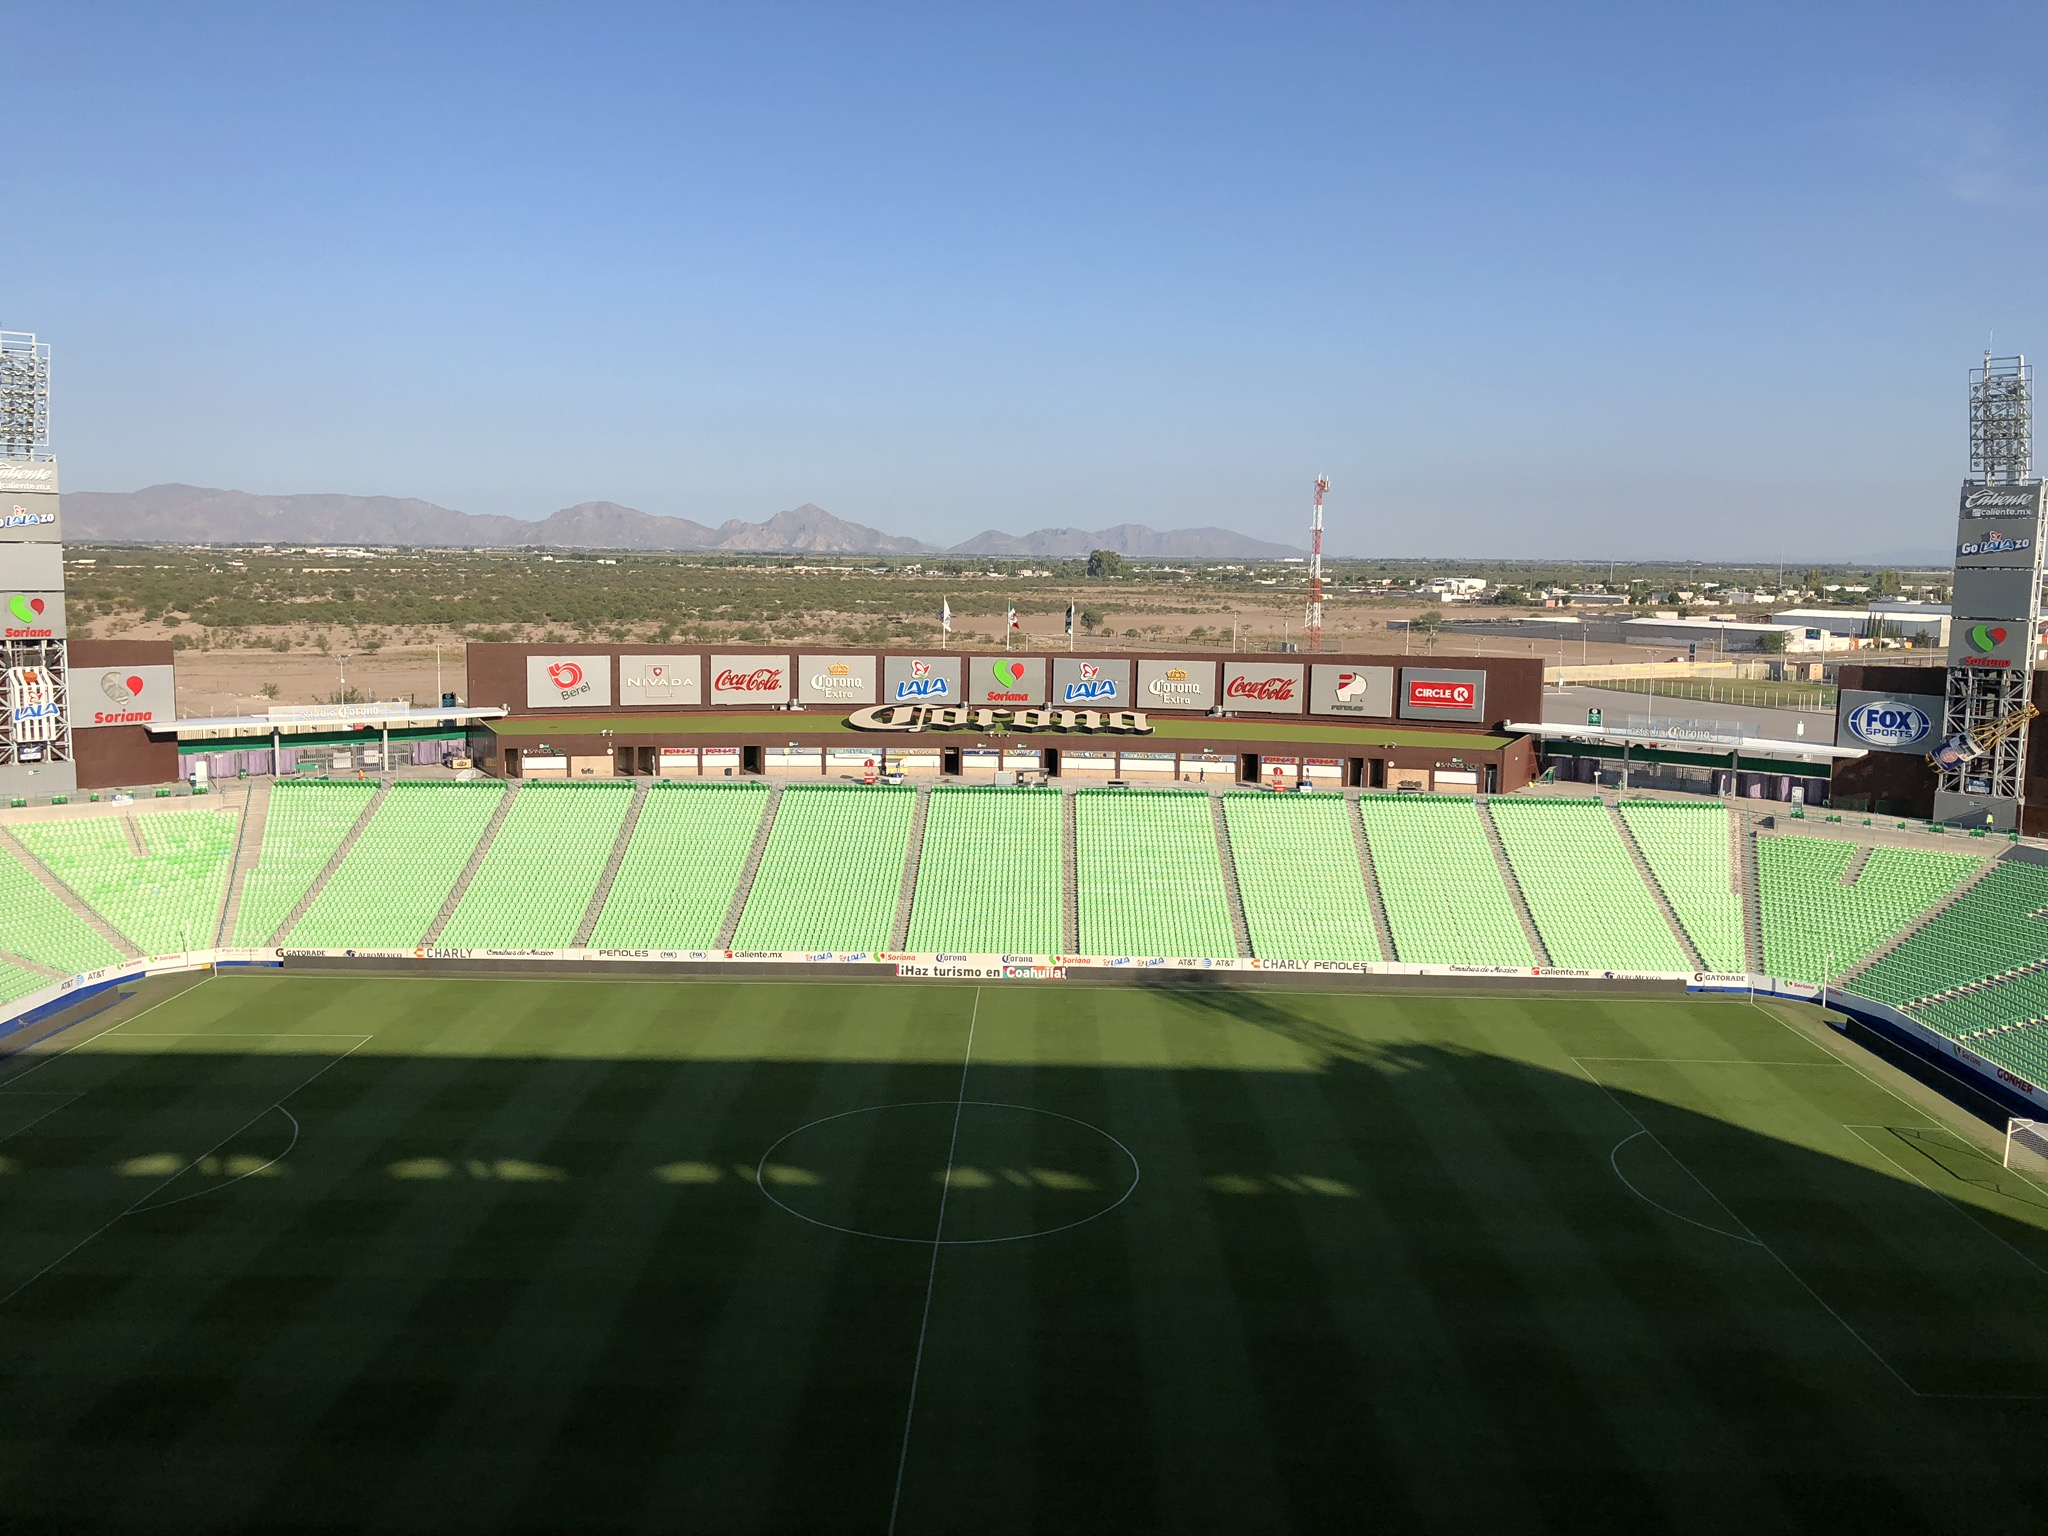 View of Estadio Corona with cerros (mountains) rising in the background.